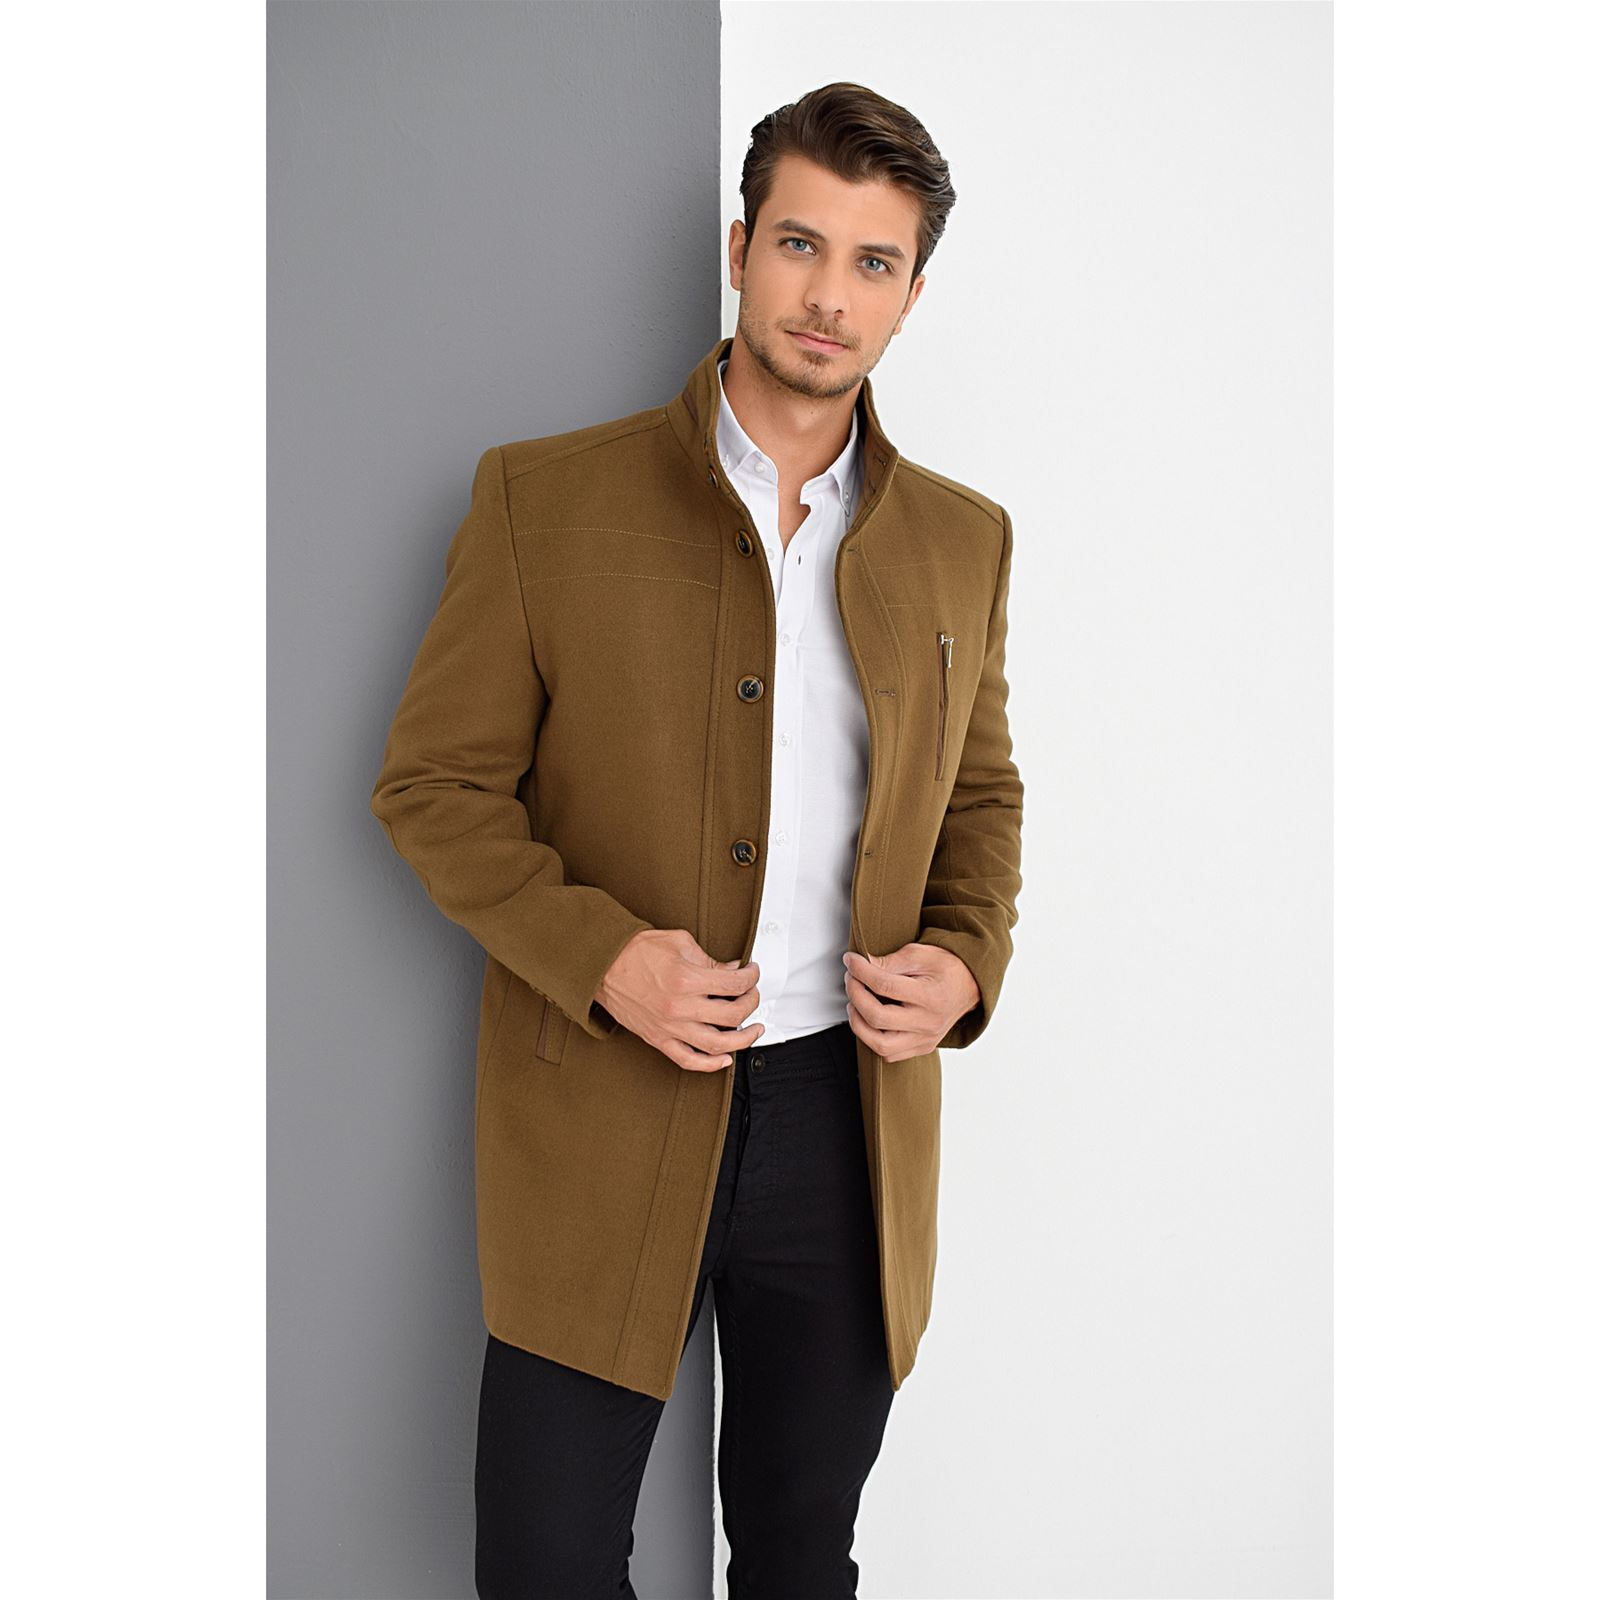 Dewberry Manteau 70% laine camel | BrandAlley